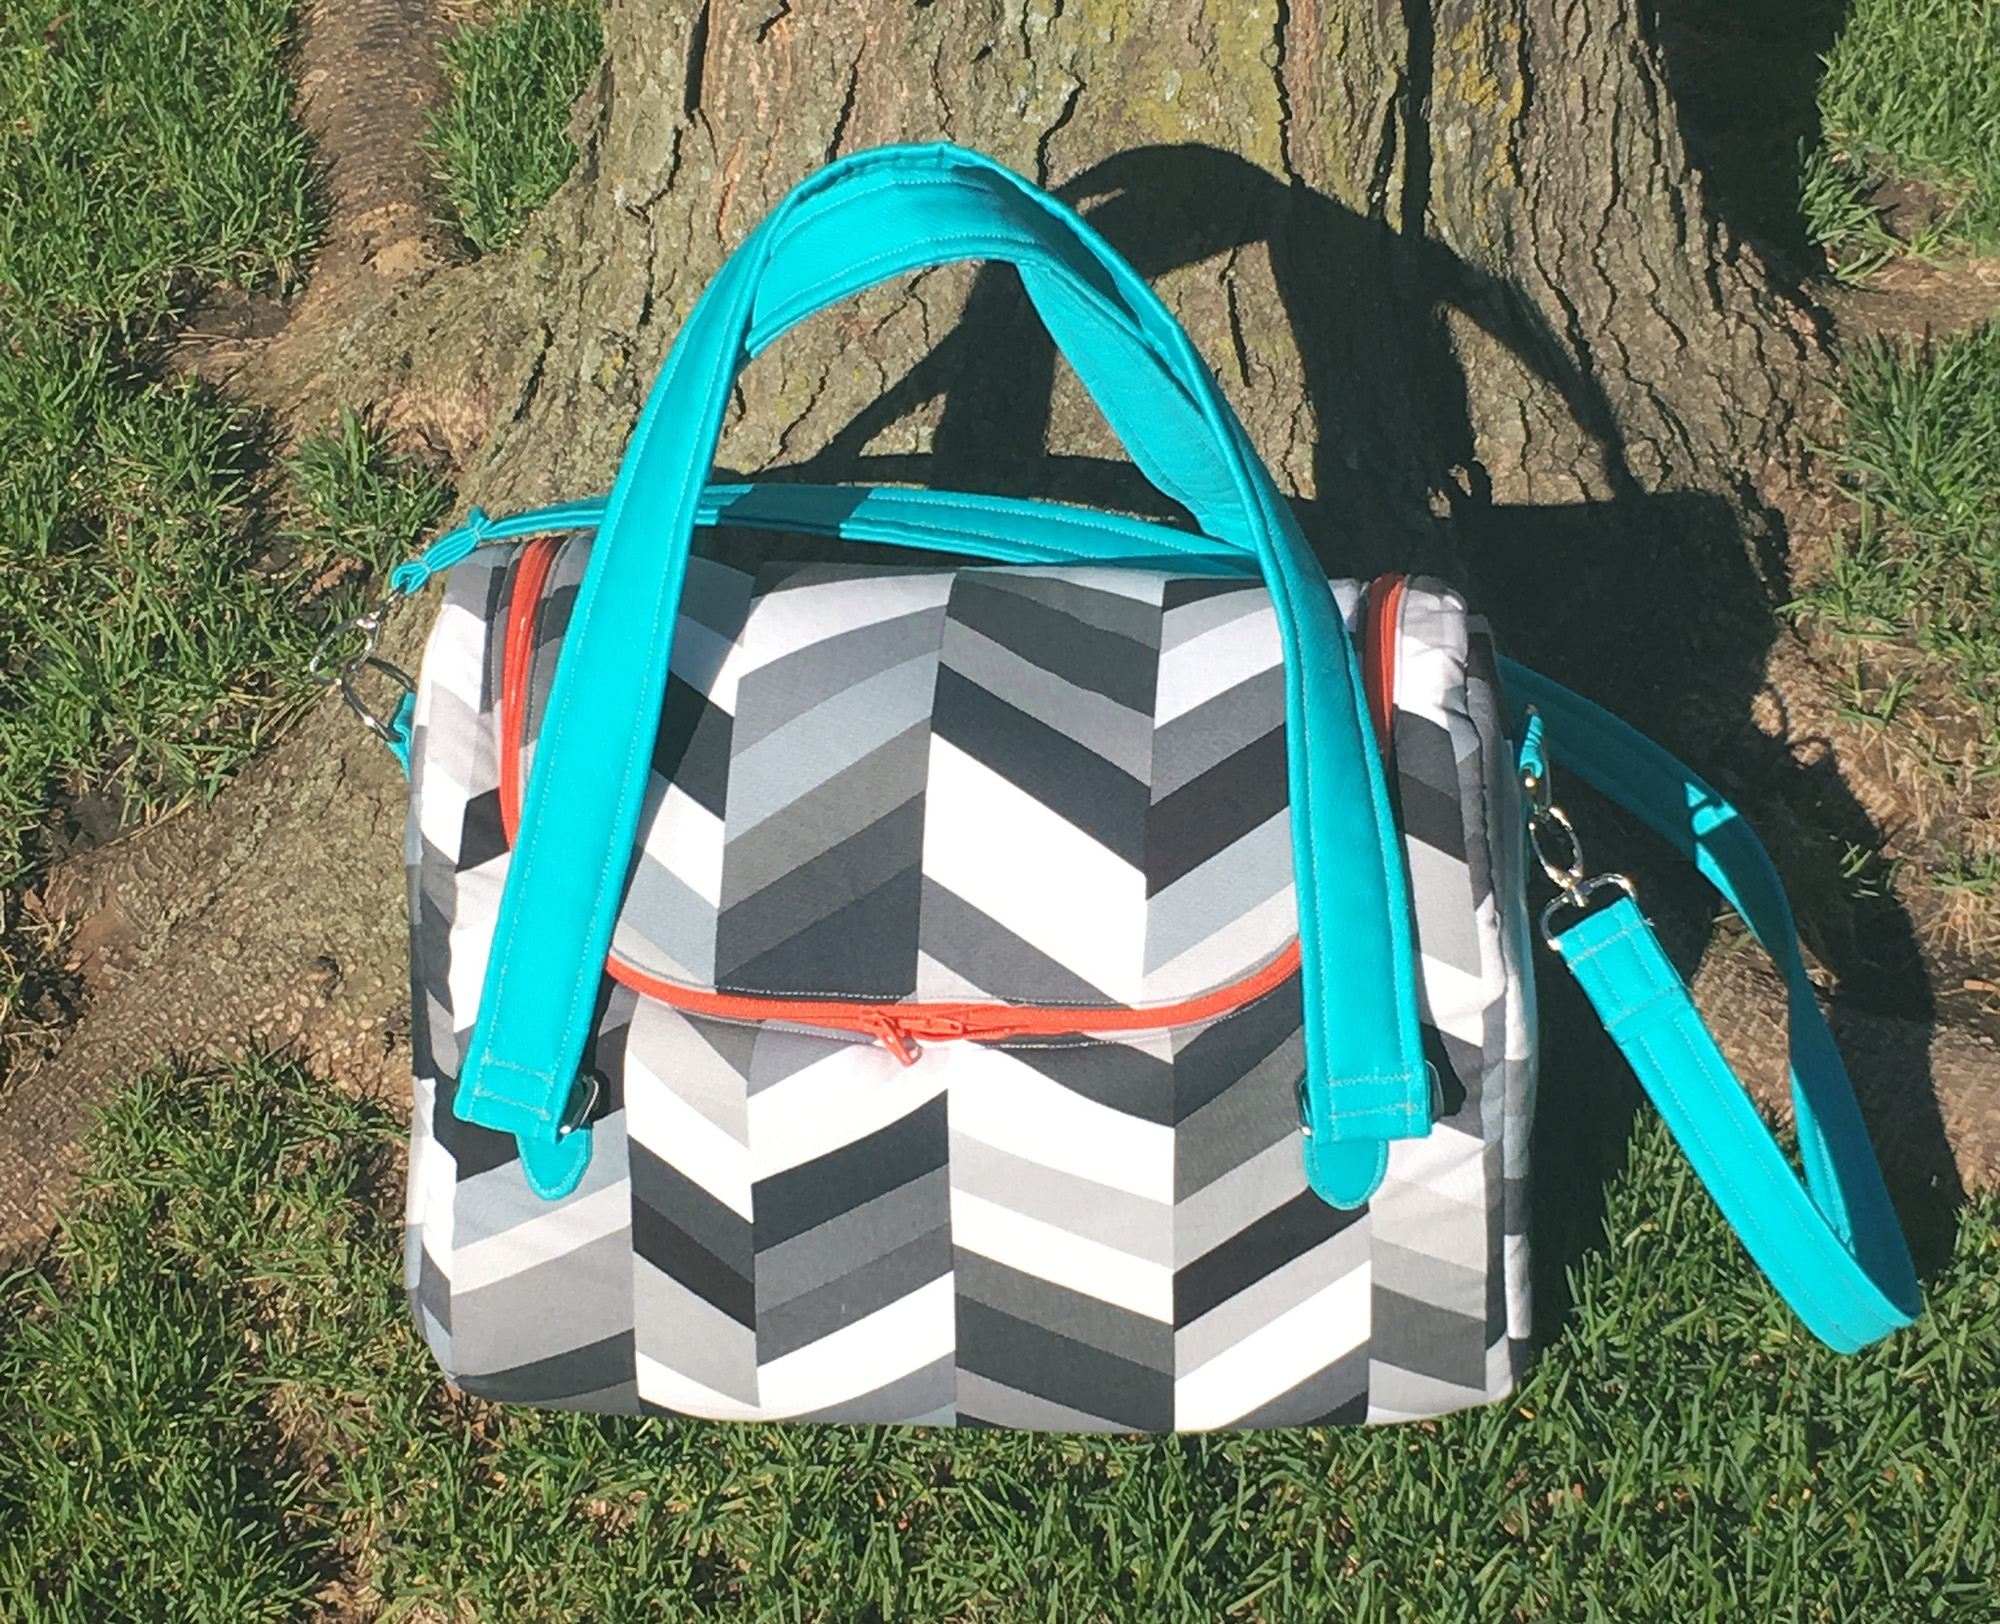 Sew Sweetness Tortoise Bag sewing pattern, sewn by Hillary